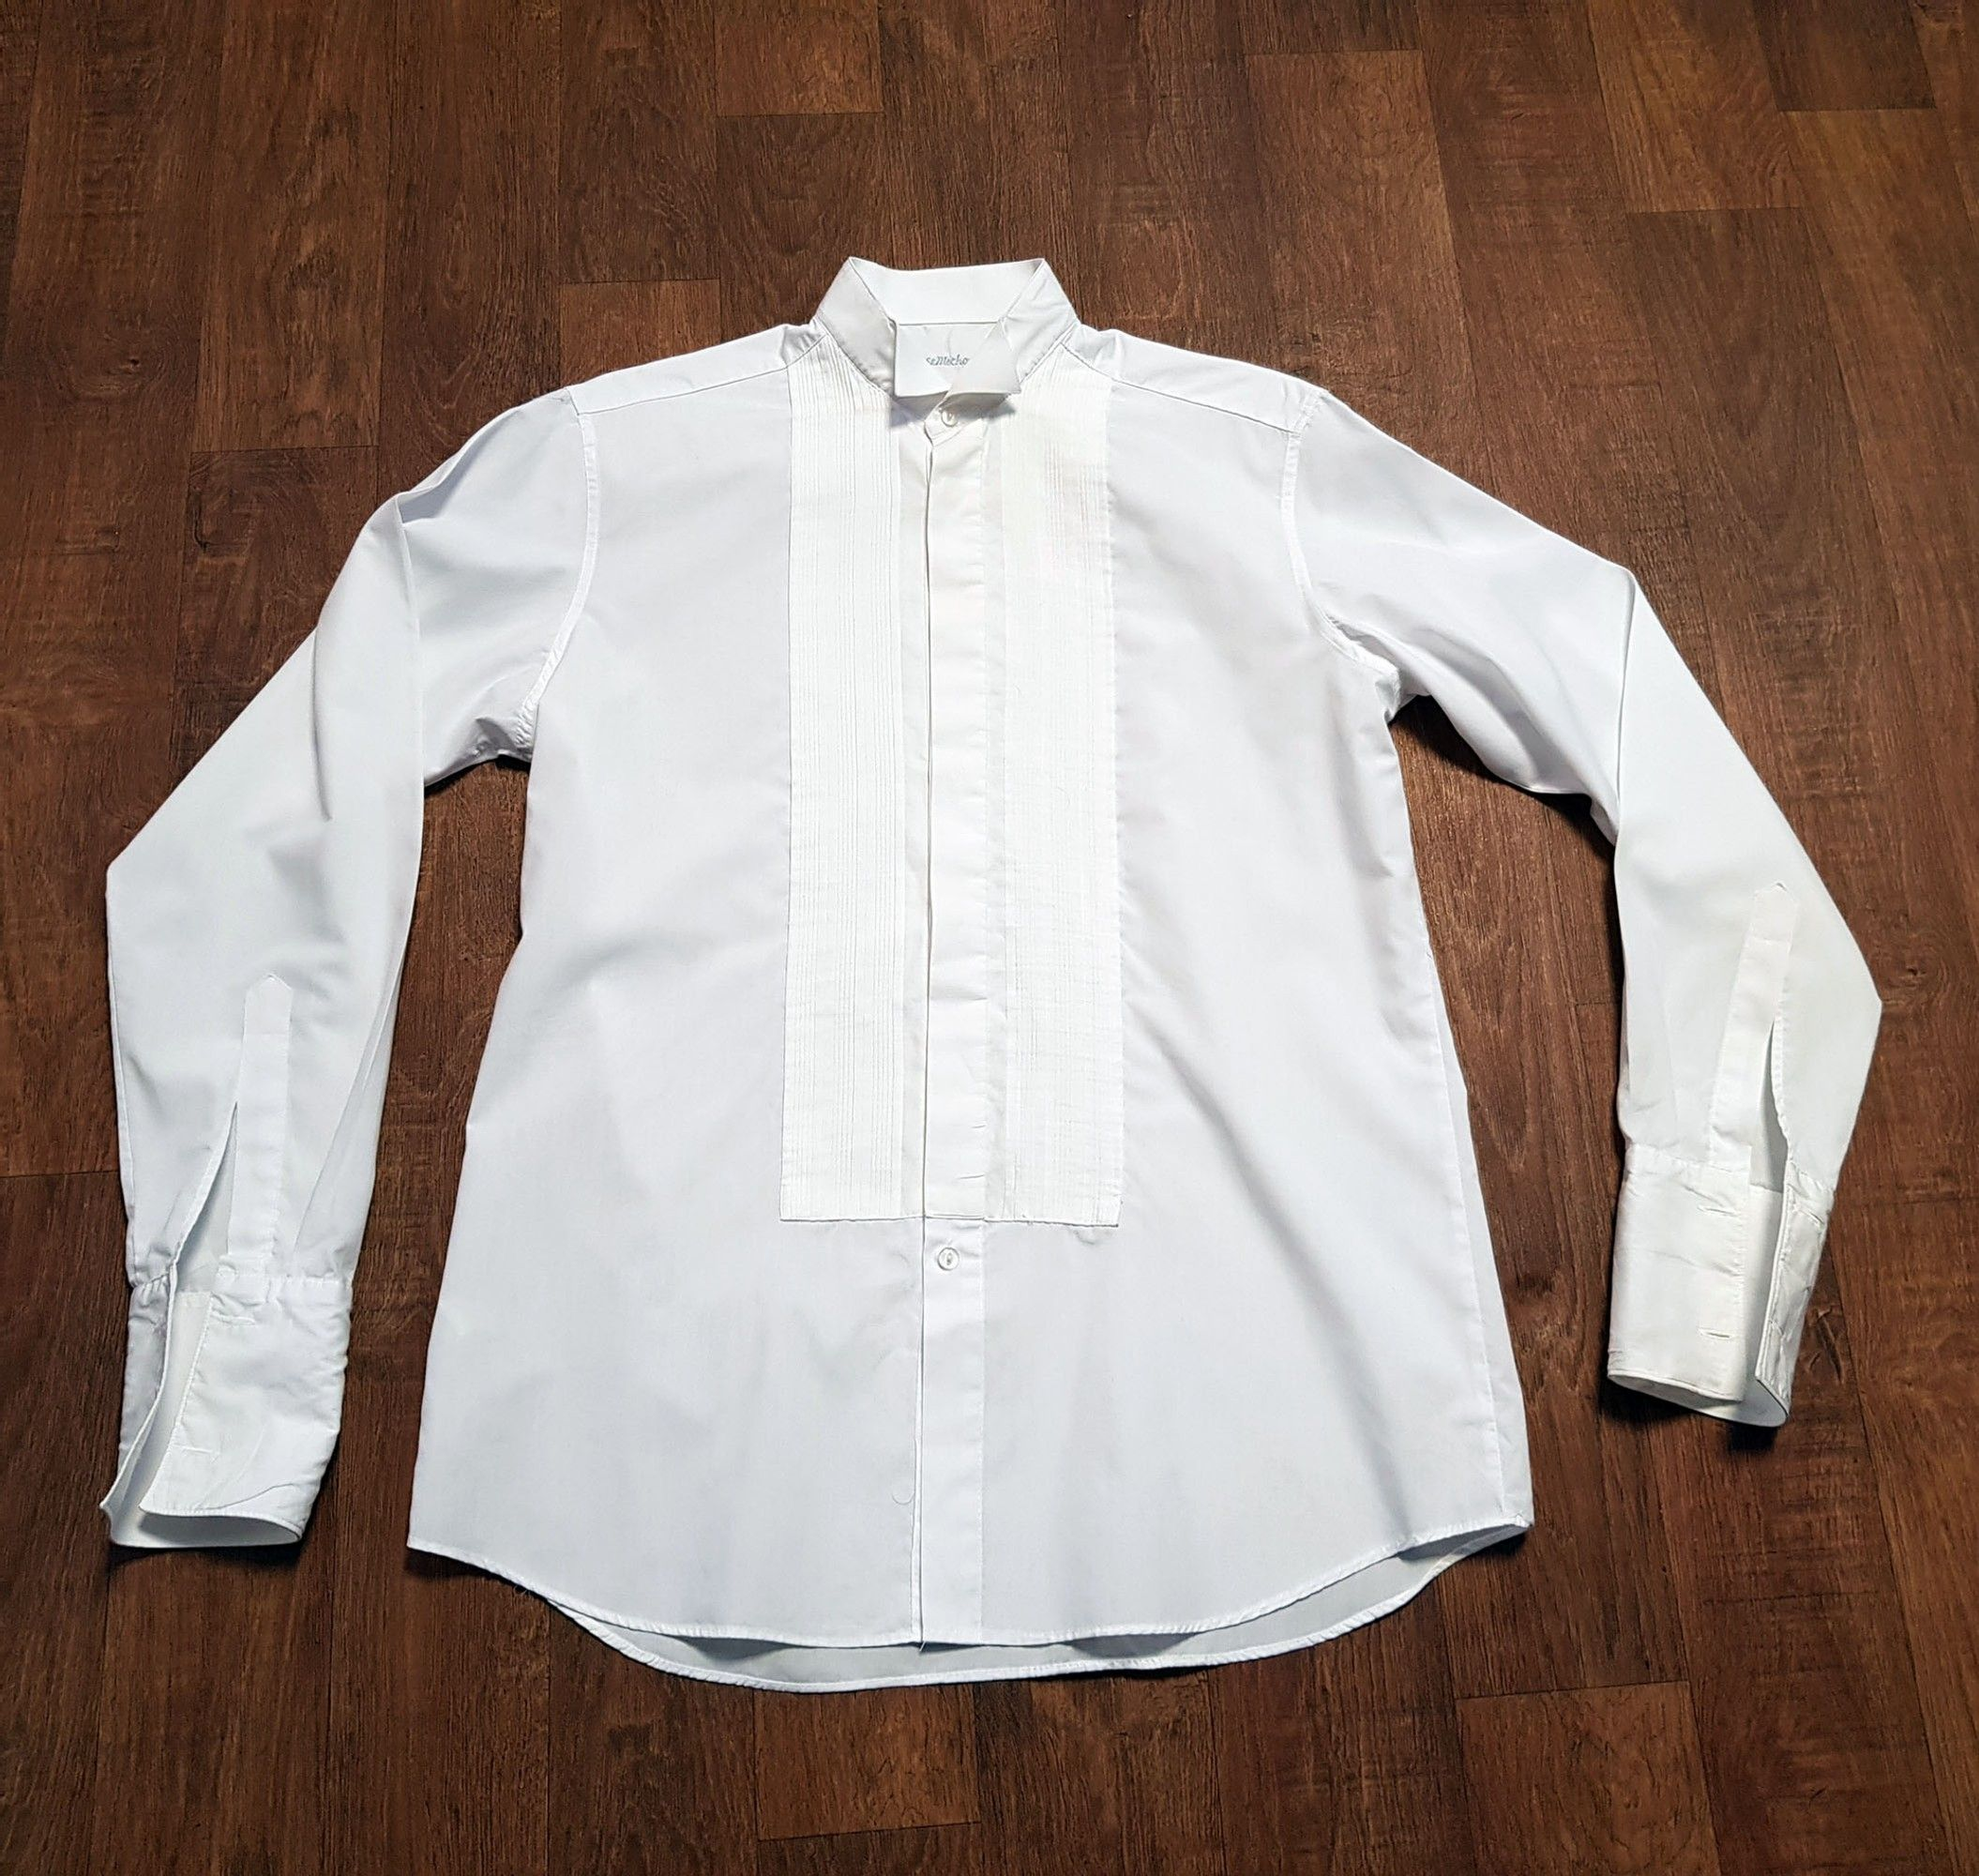 Mens Vintage White Wing Collar Dress Shirt UK Size Large